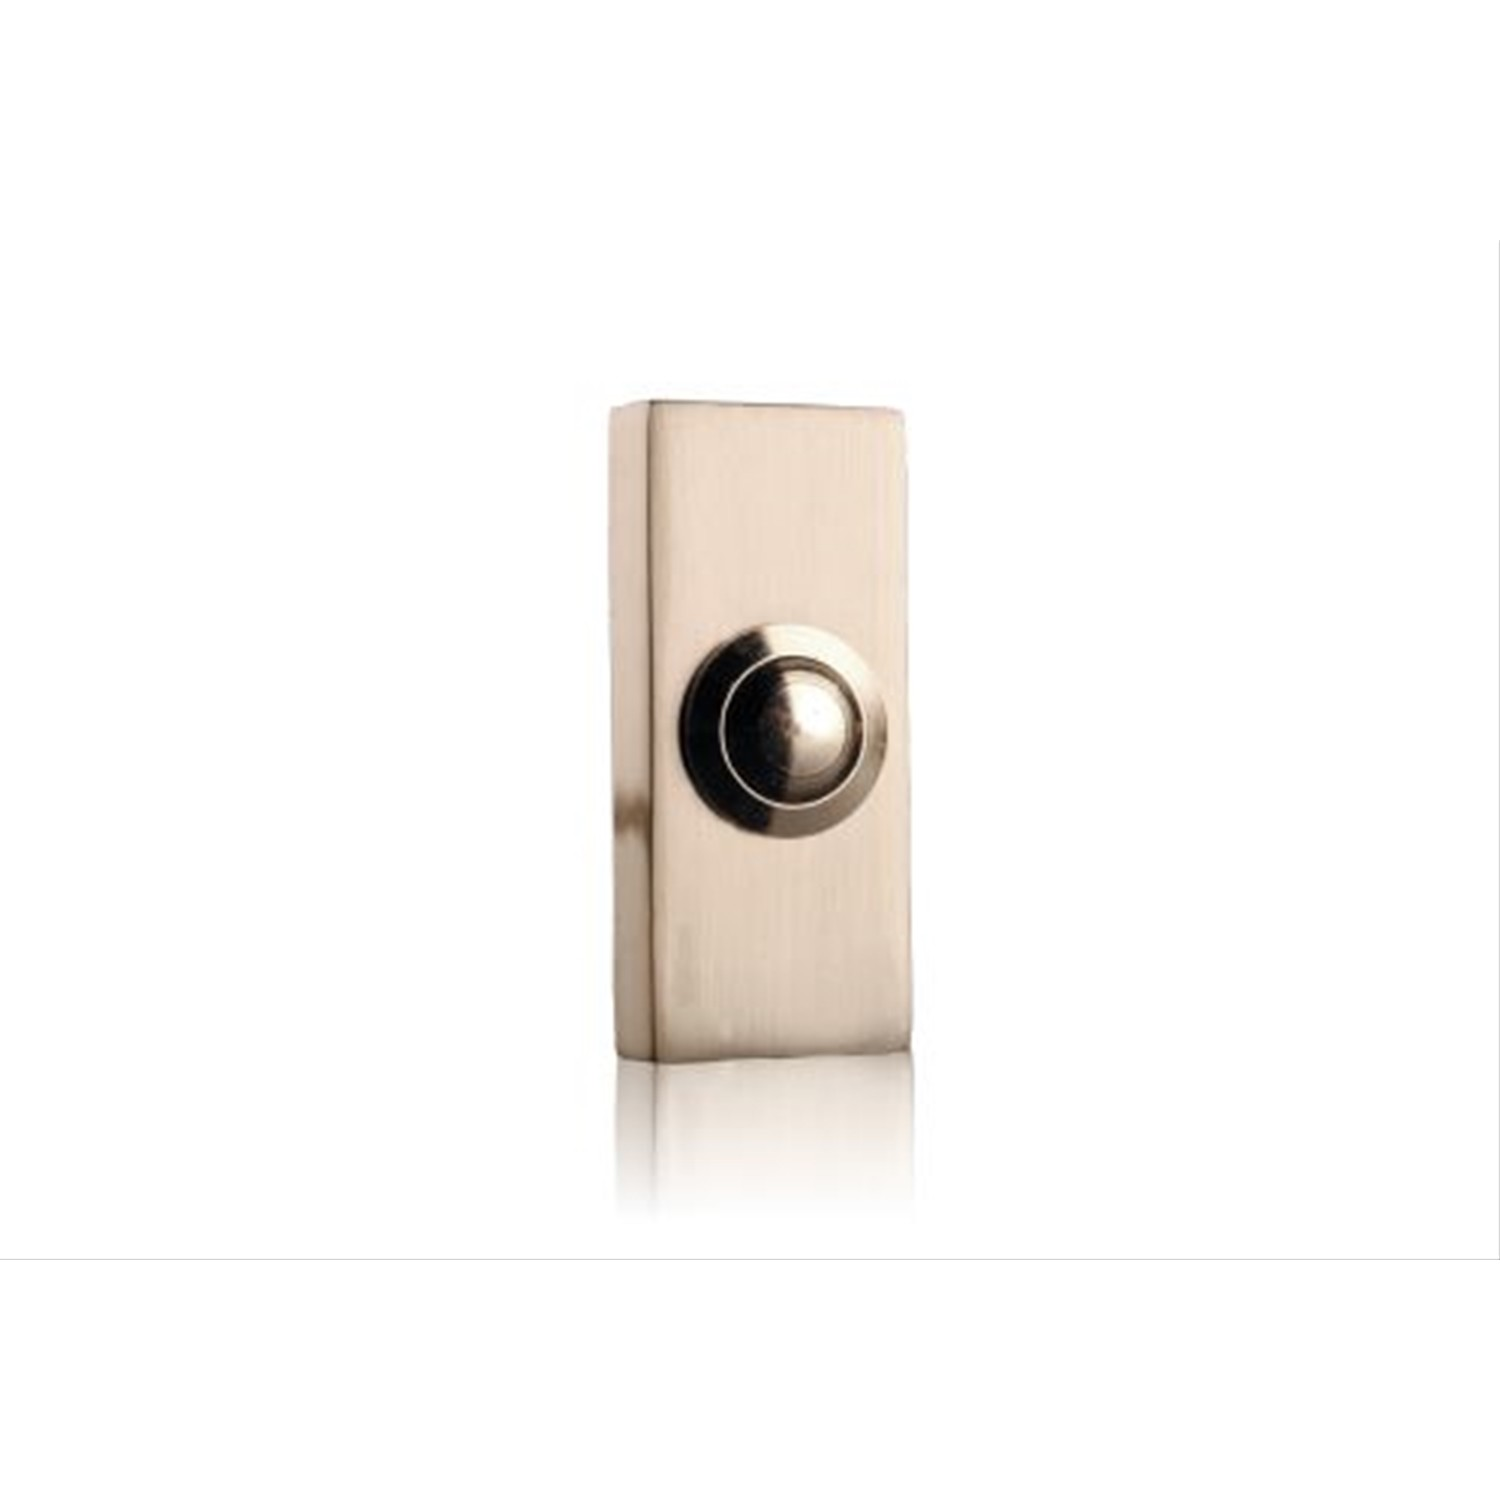 Byron 2204BN wired bell push Nickel finish Metal